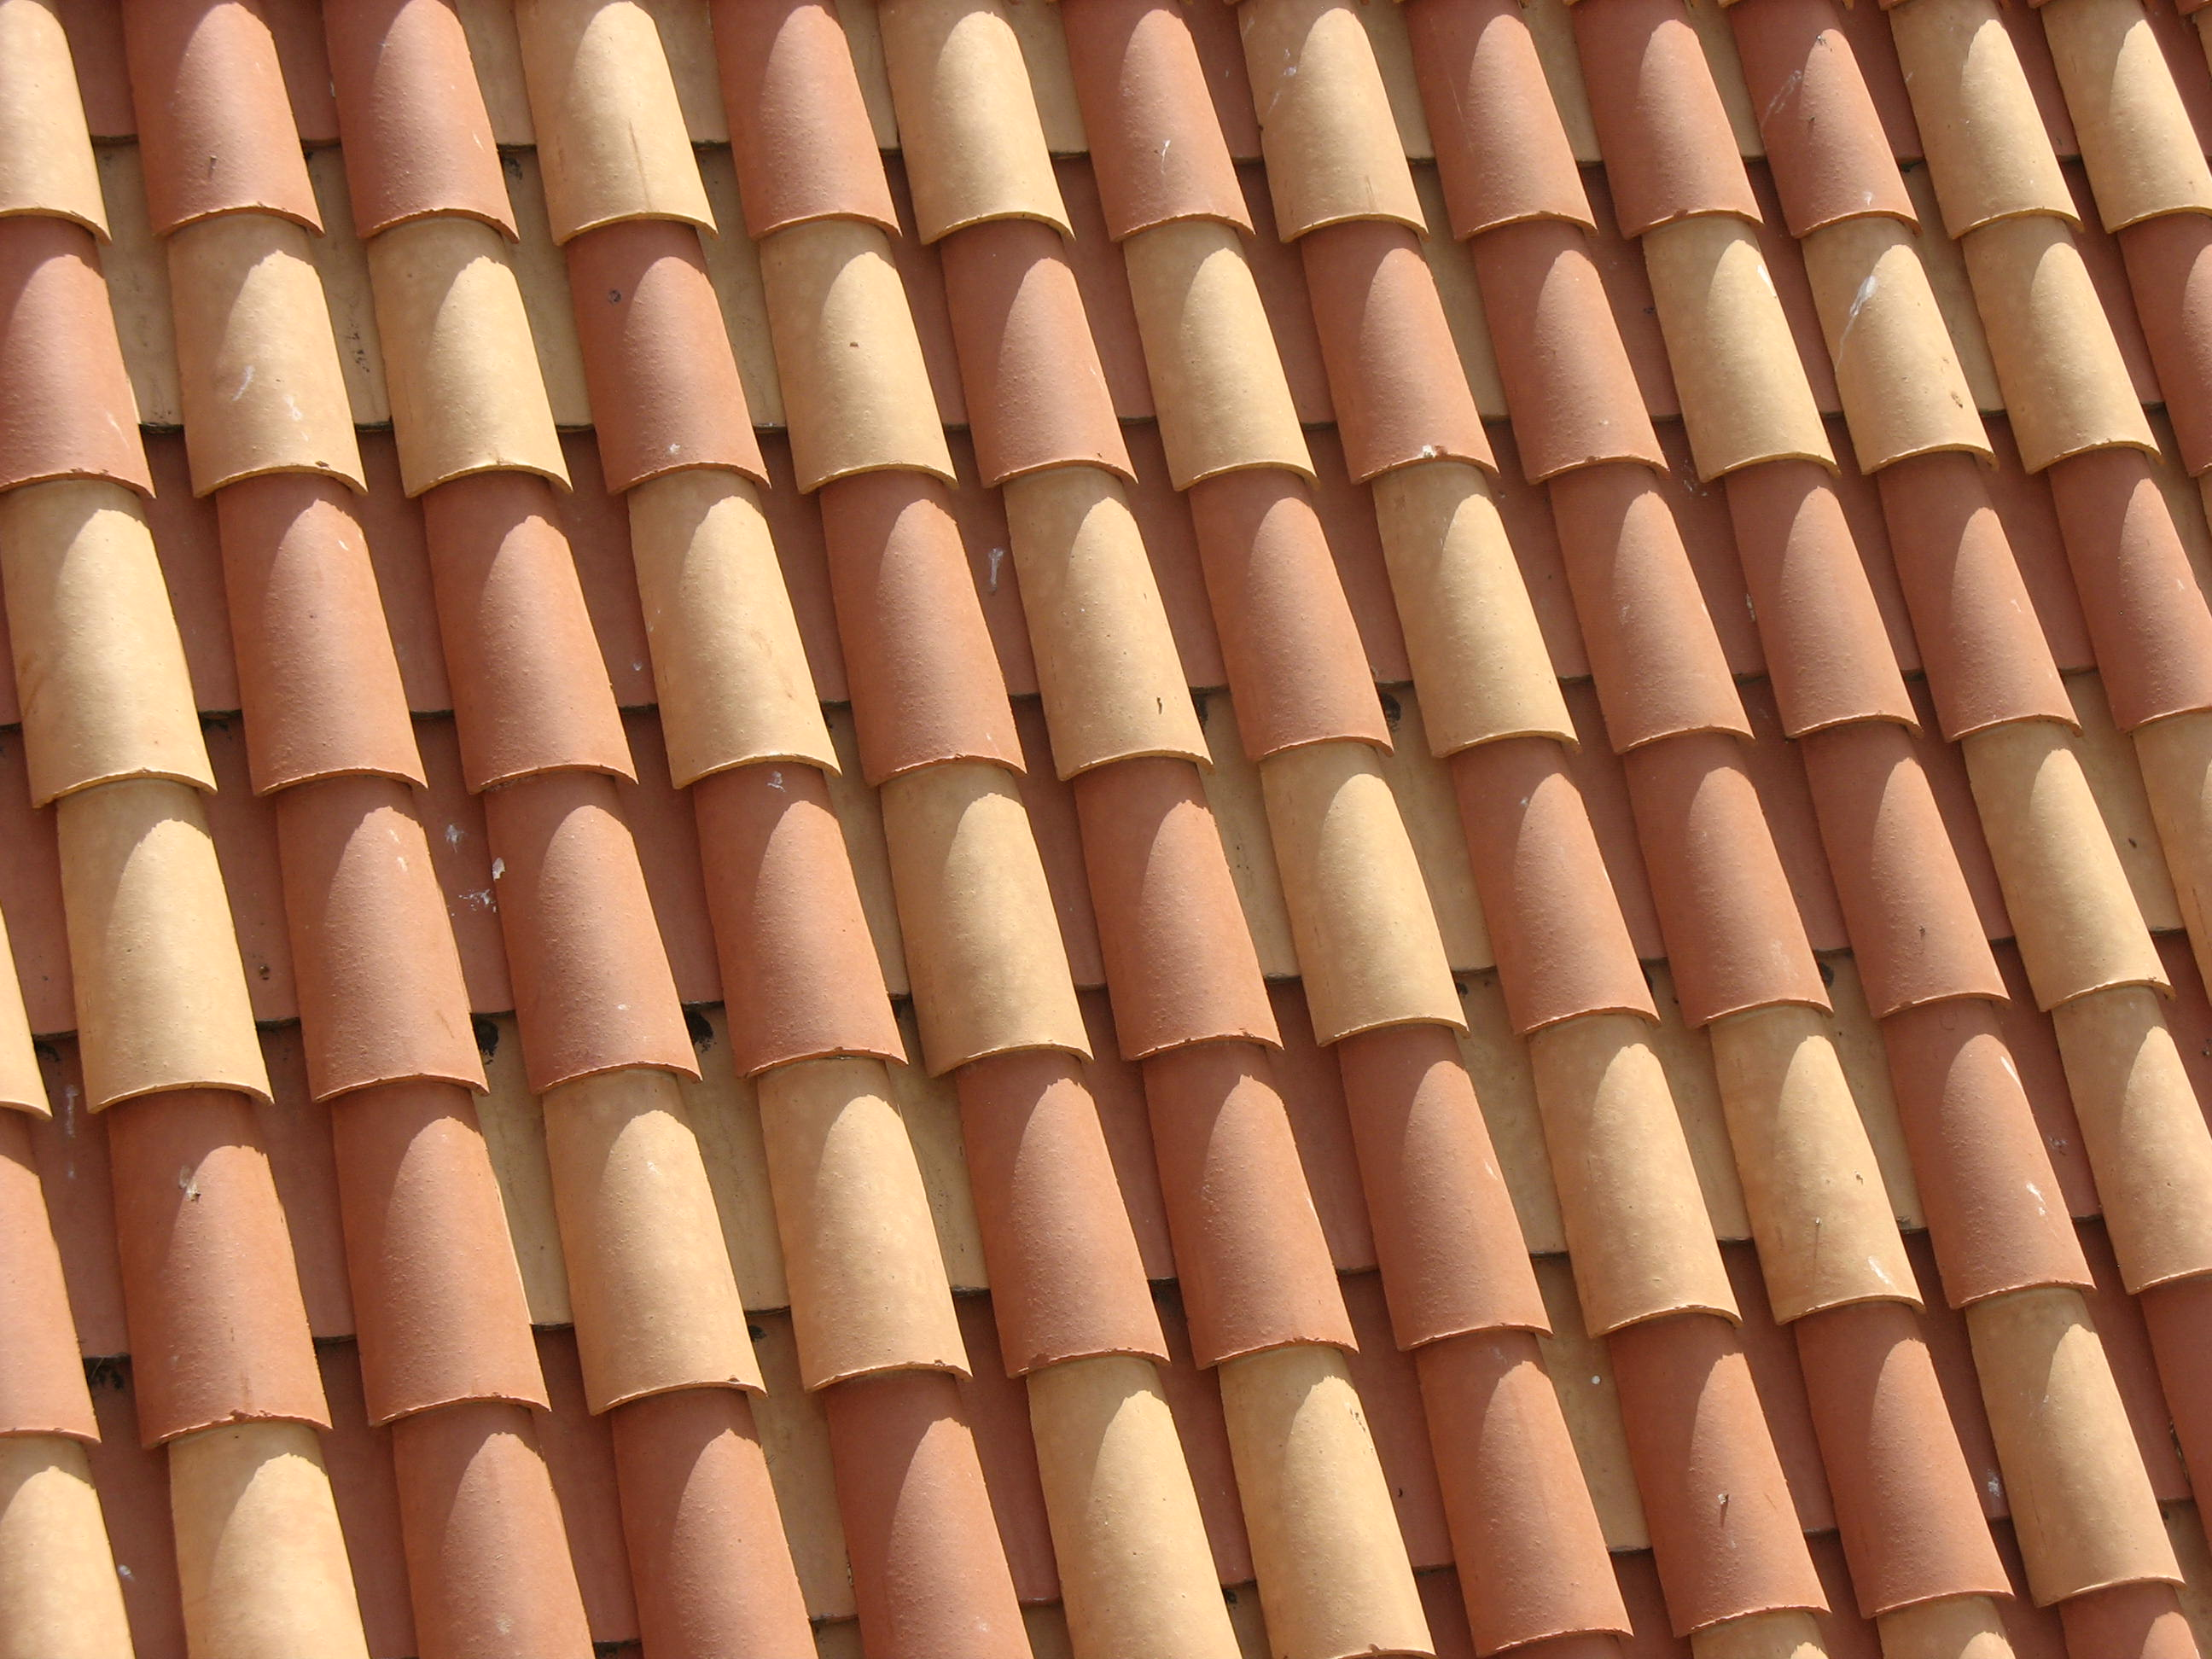 1 Clay Tiles Pakistan Spanish Roof Tiles Terracotta Roofing Tiles Khaprail Tiles in Pakistan.